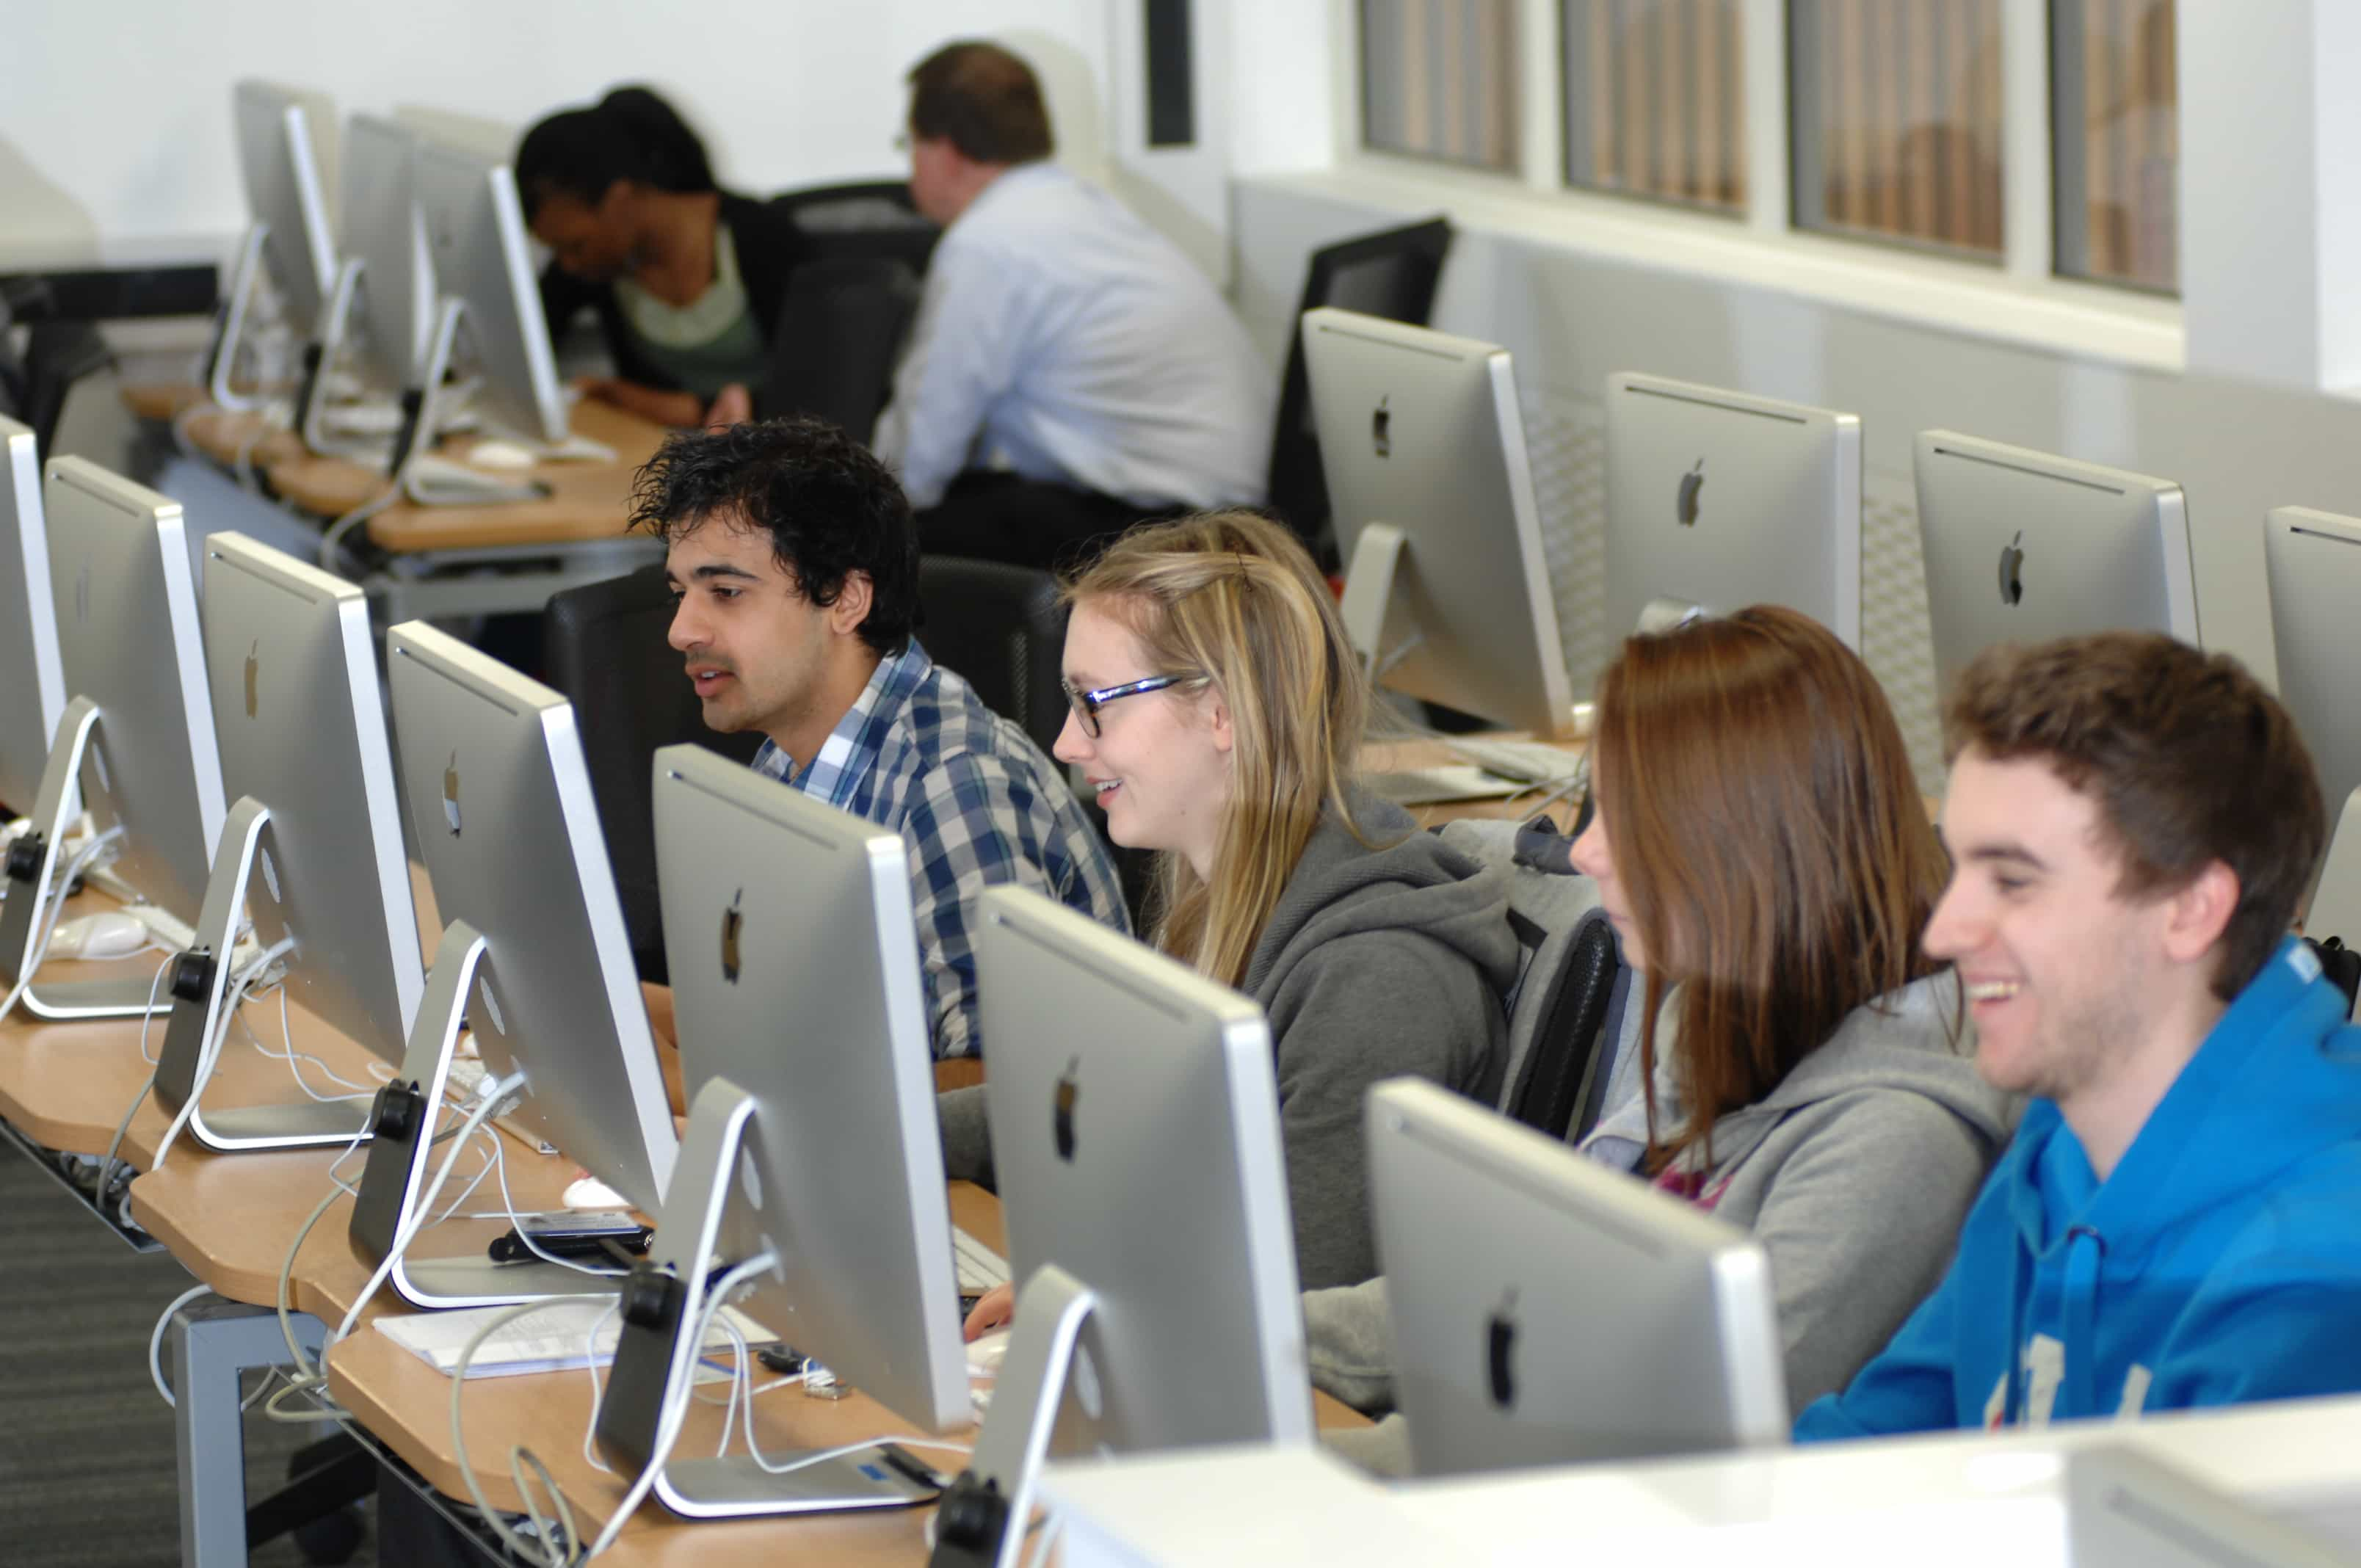 mastering computer skills If you are still nervous about taking the minutes of a meeting after reading this post, then it might be a good idea for you to enrol for a business administration or secretarial course at oxbridge academy to develop your skills further.